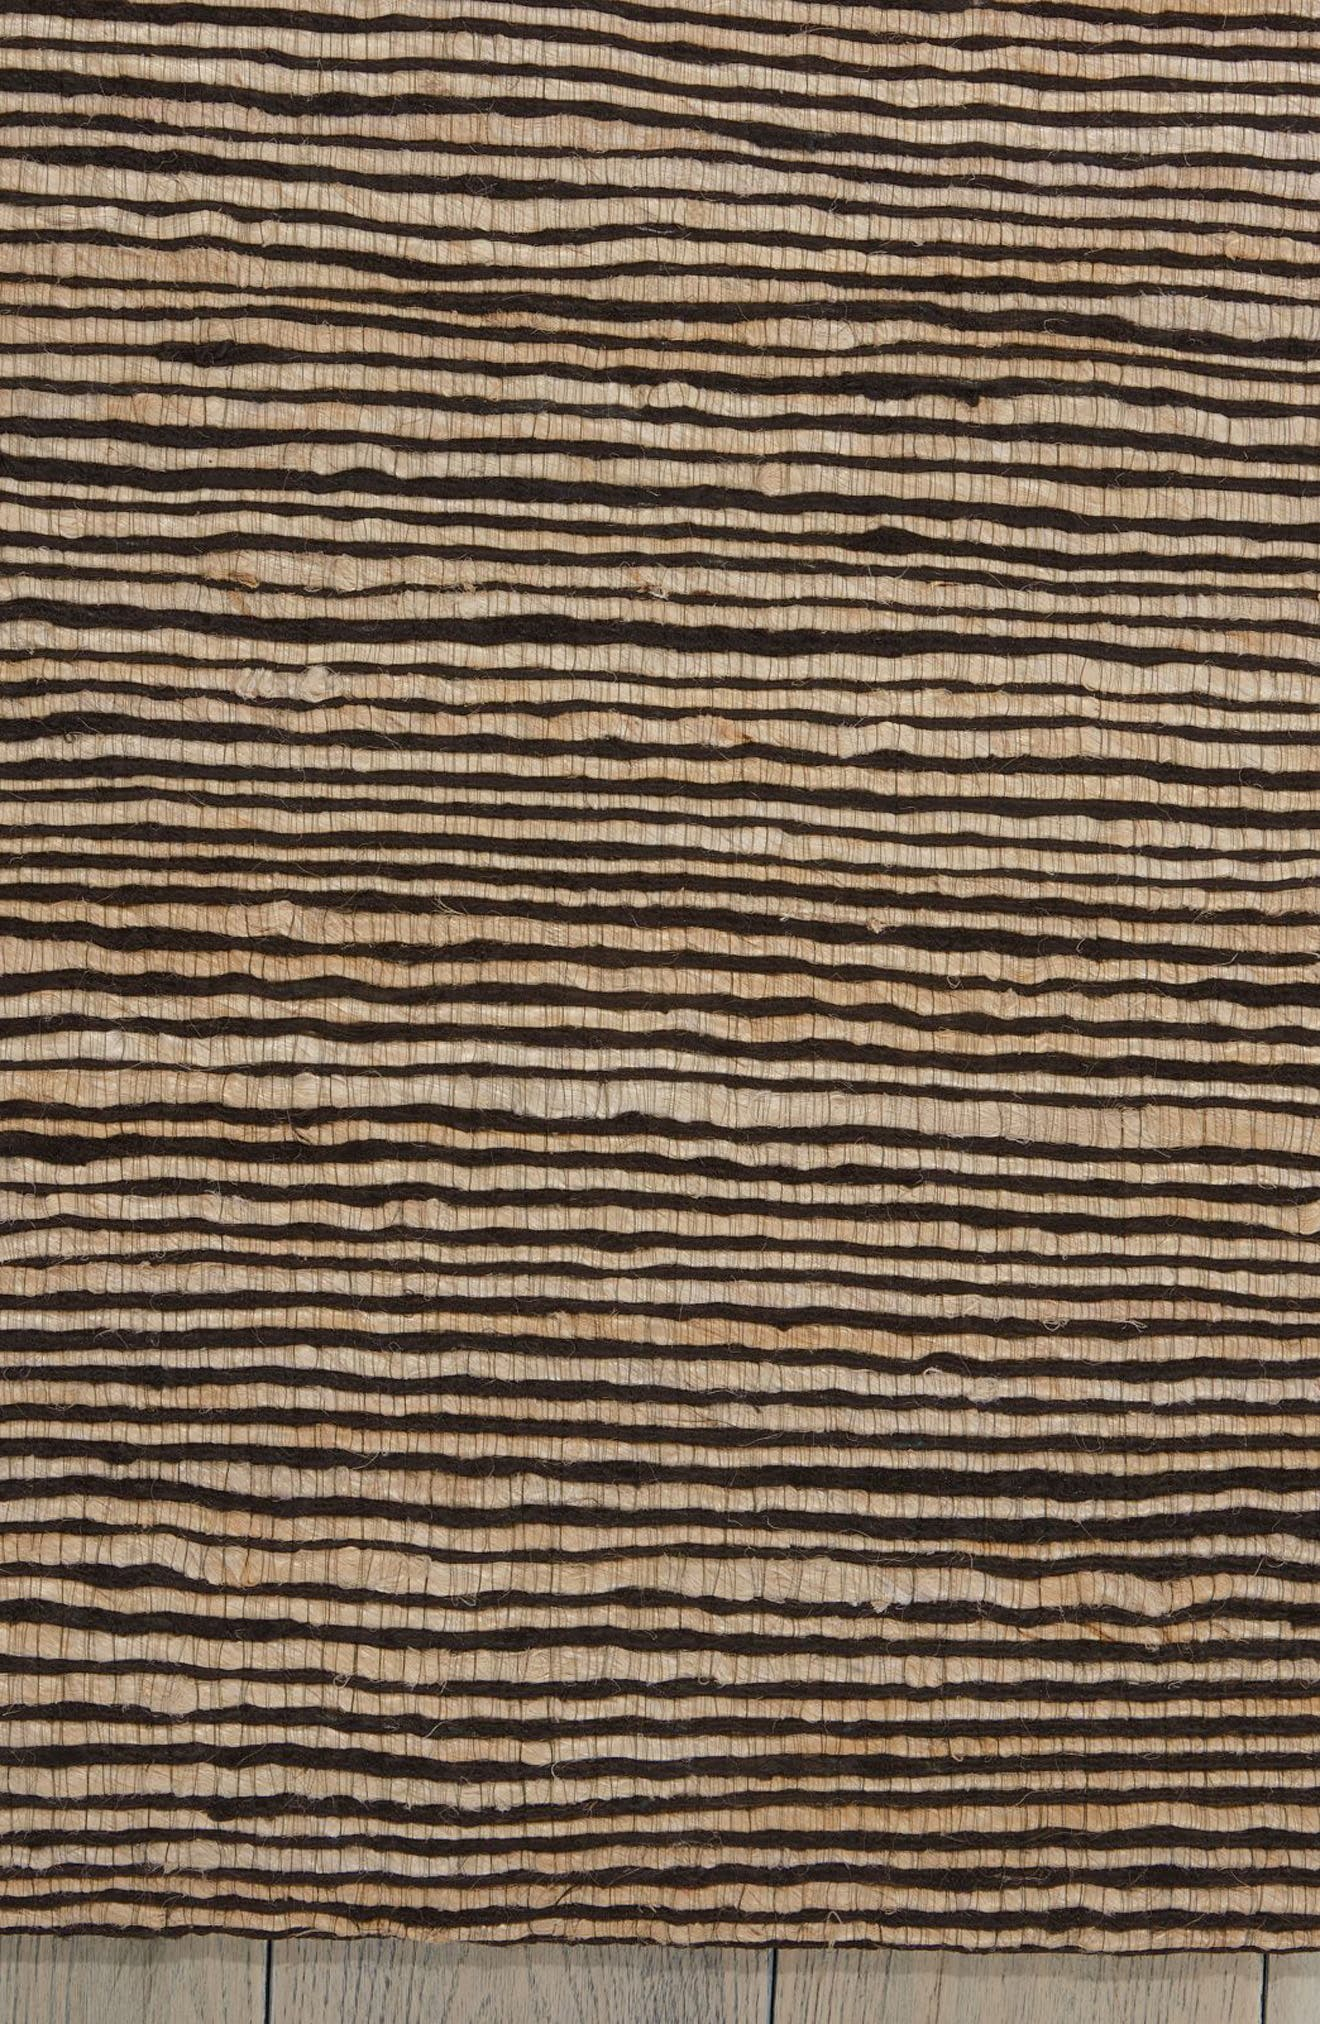 Monsoon Handwoven Area Rug,                             Alternate thumbnail 2, color,                             020